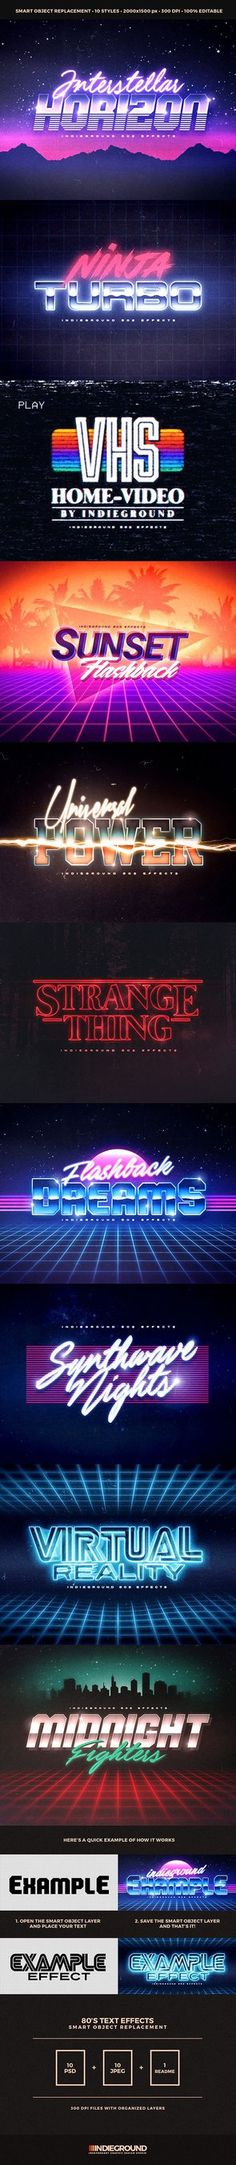 """DOWNLOAD: goo.gl/rkiua480's Retro Text Effects""""Simple & 3d Retro Effect"""" – This graphic resource gives you a quick & easy possibility to apply an high qu..."""